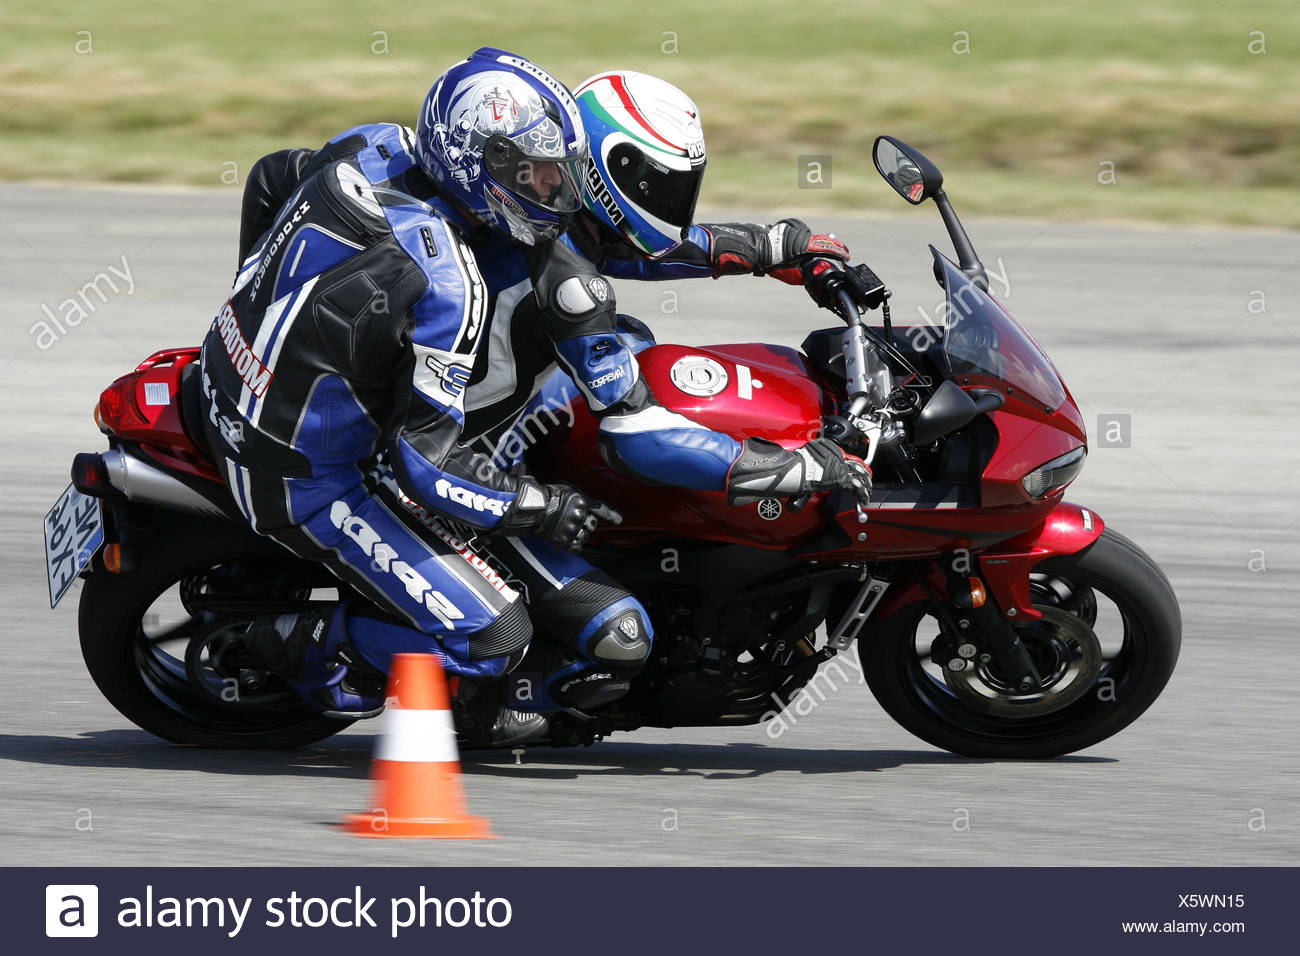 Motorcycle, Yamaha, moving, test situation, front seat passenger - Stock Image